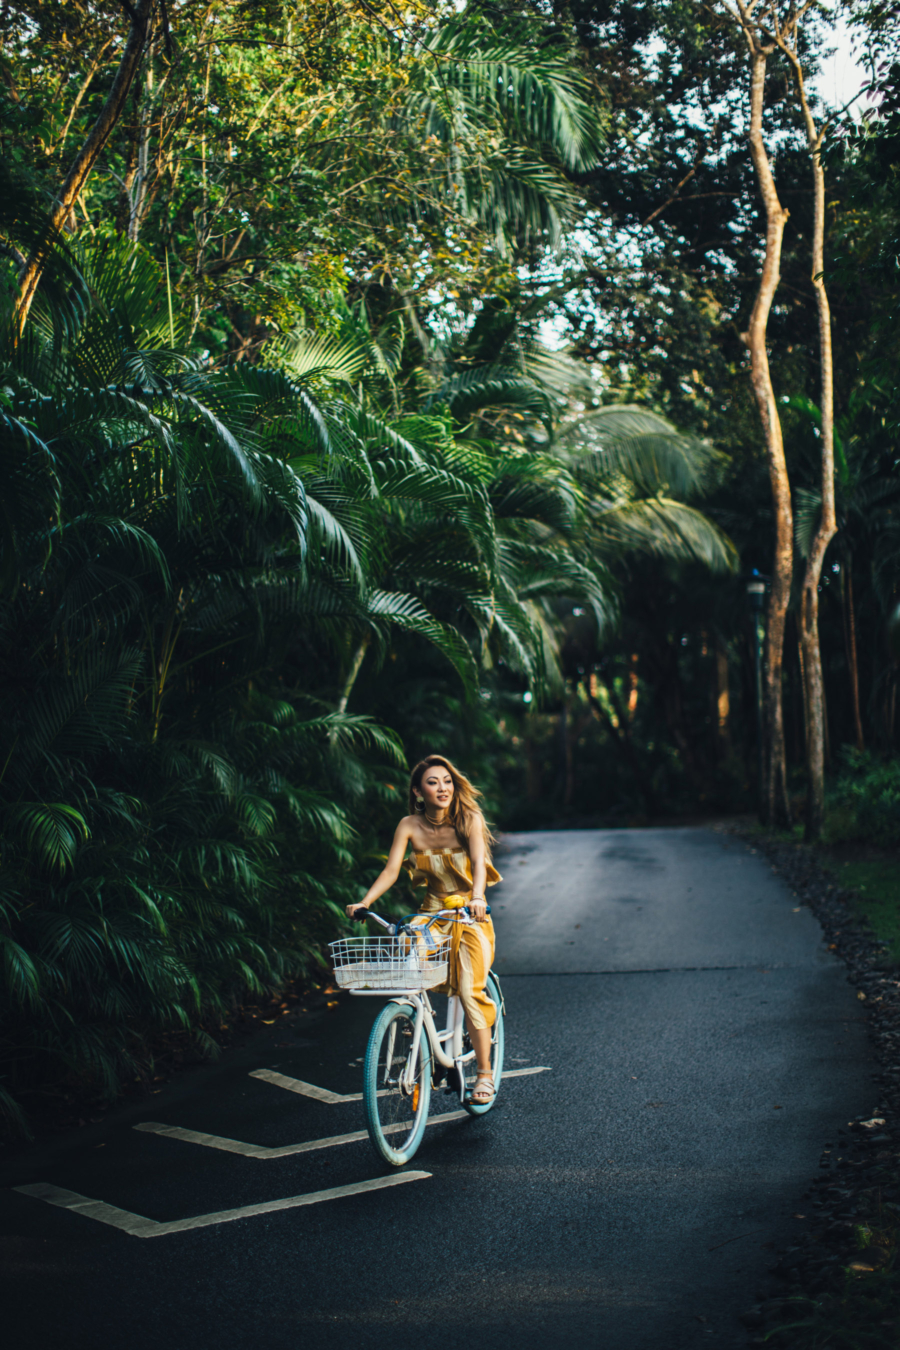 Bike Riding Puerto Rico - Discover Puerto Rico's Best Kept Secret // NotJessFashion.com